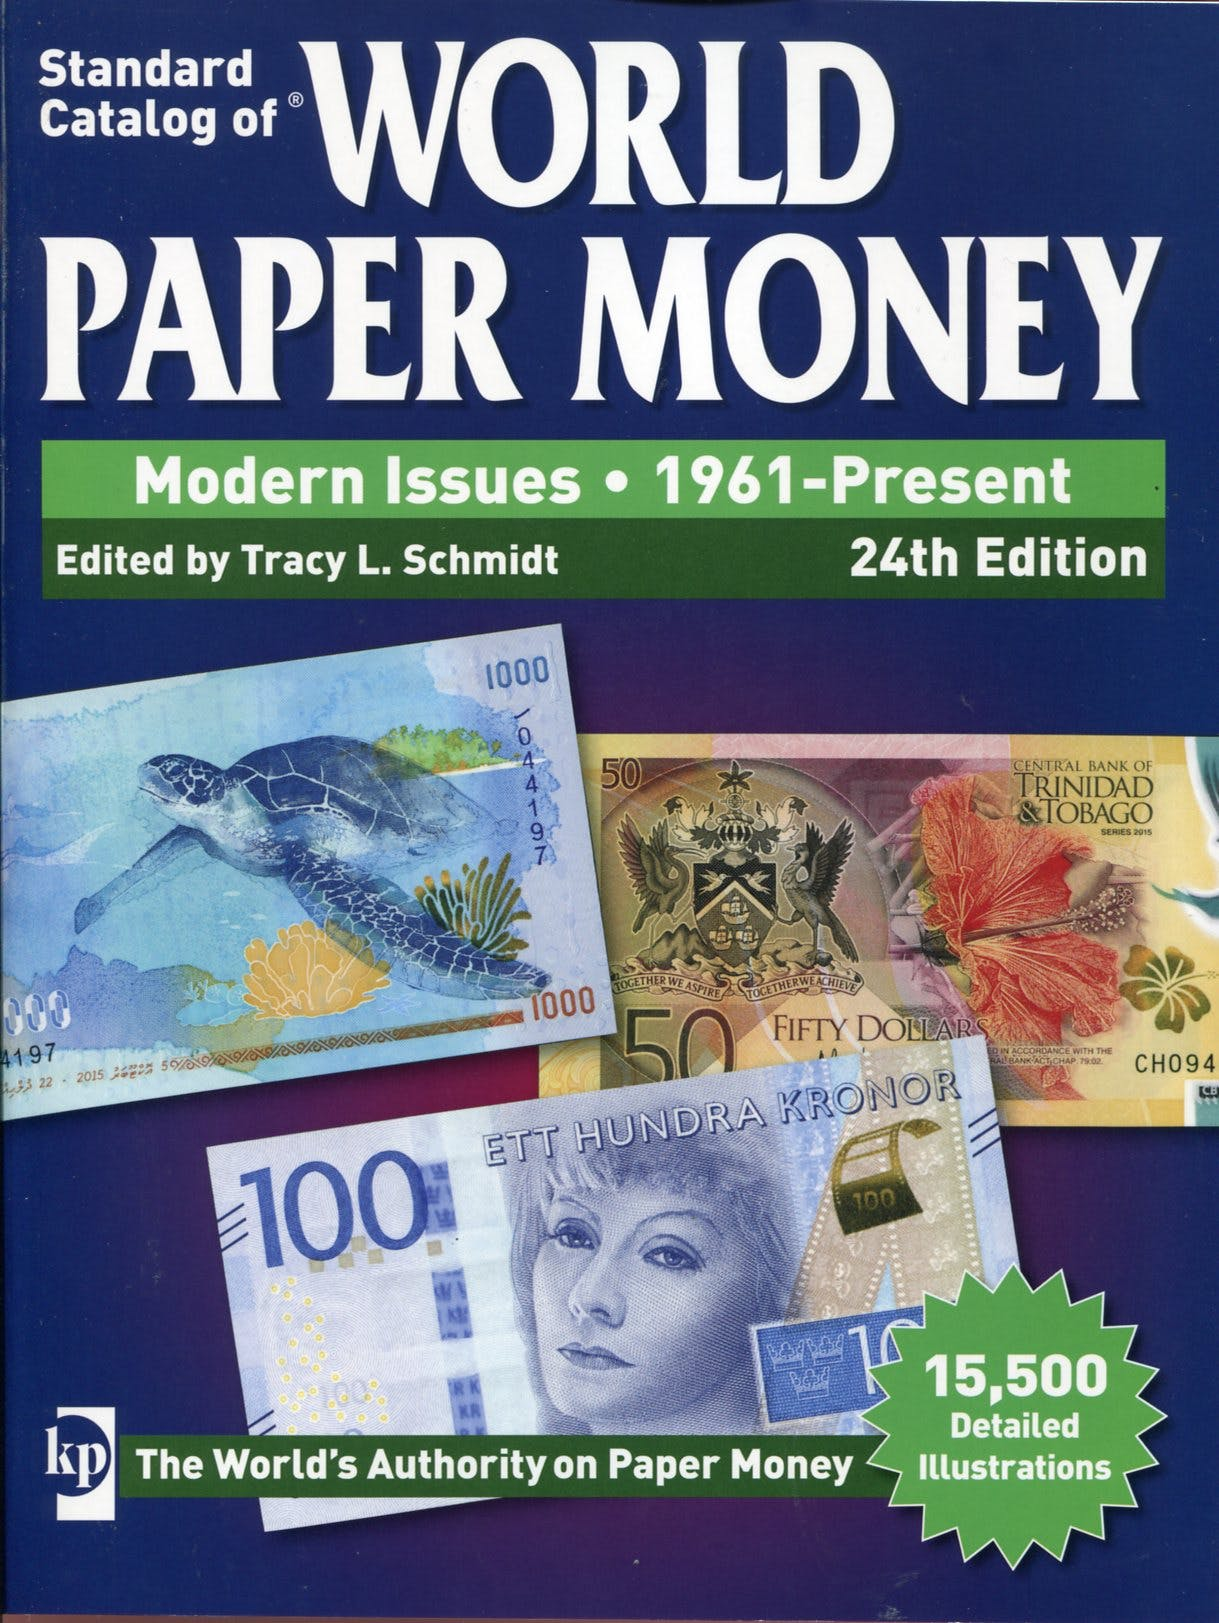 World Paper Money Volume III Modern Issues 24th edition - Token Publishing Shop